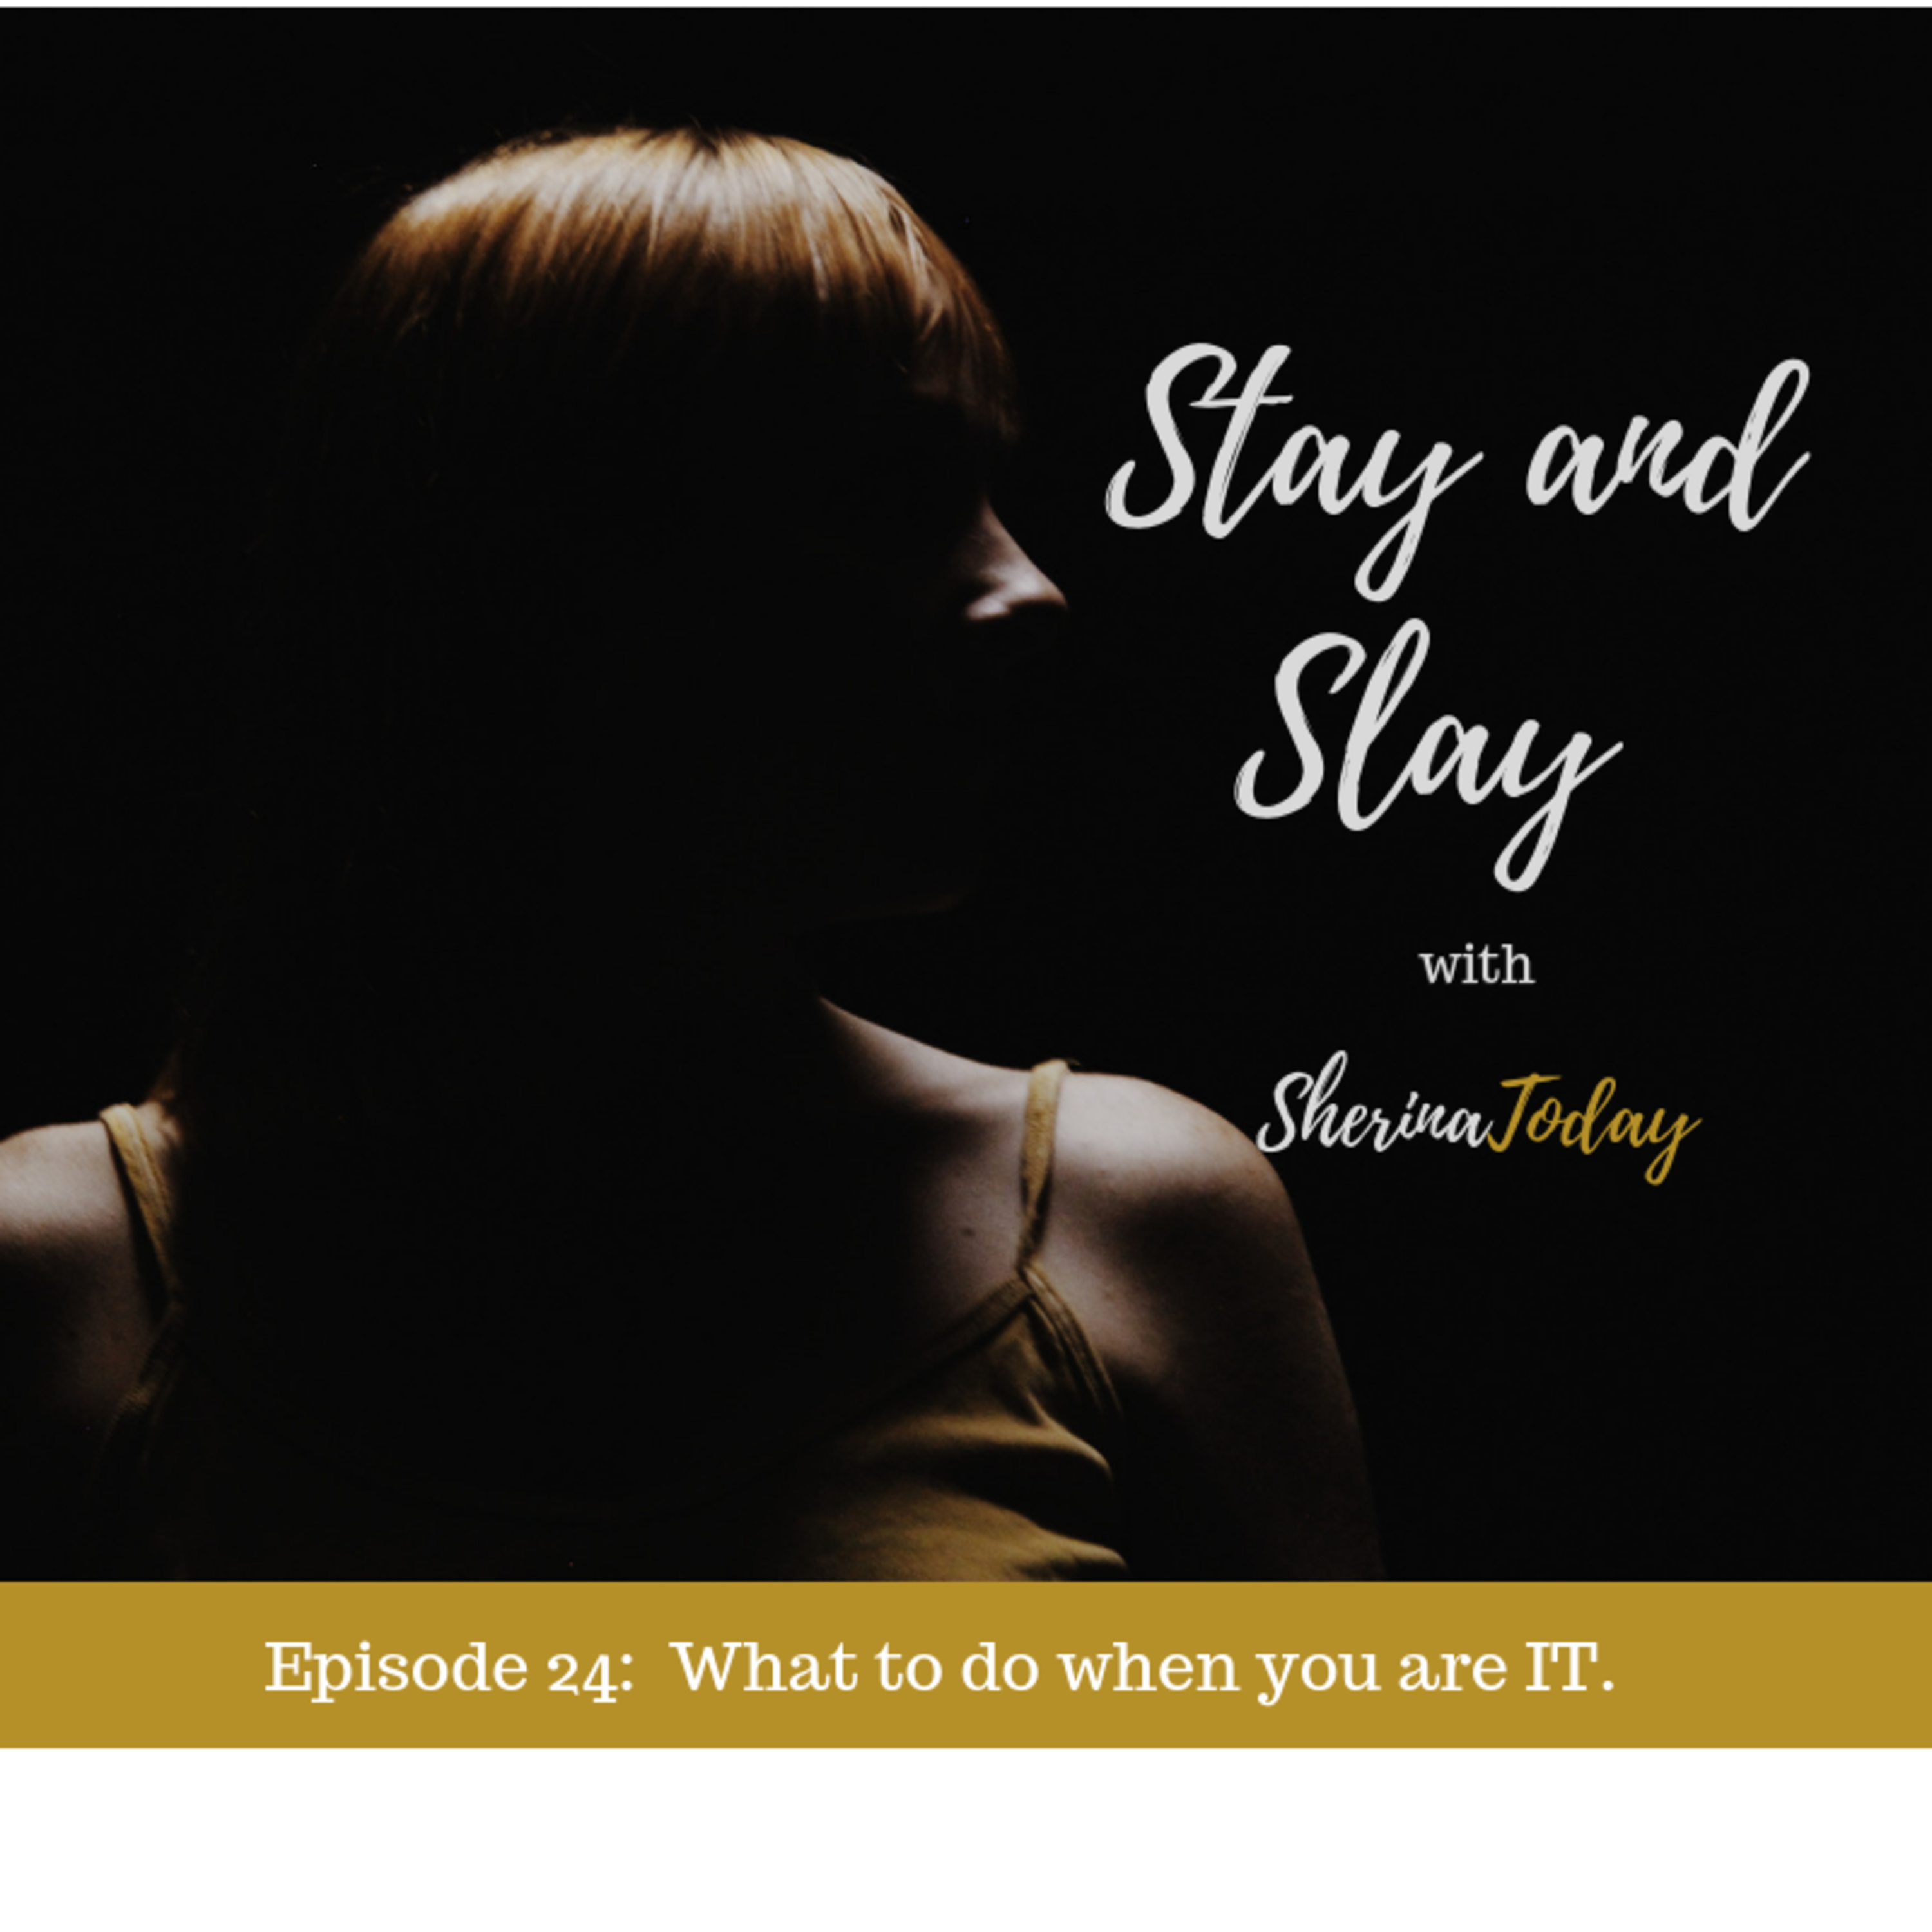 Episode 24 - What to do when you are IT.